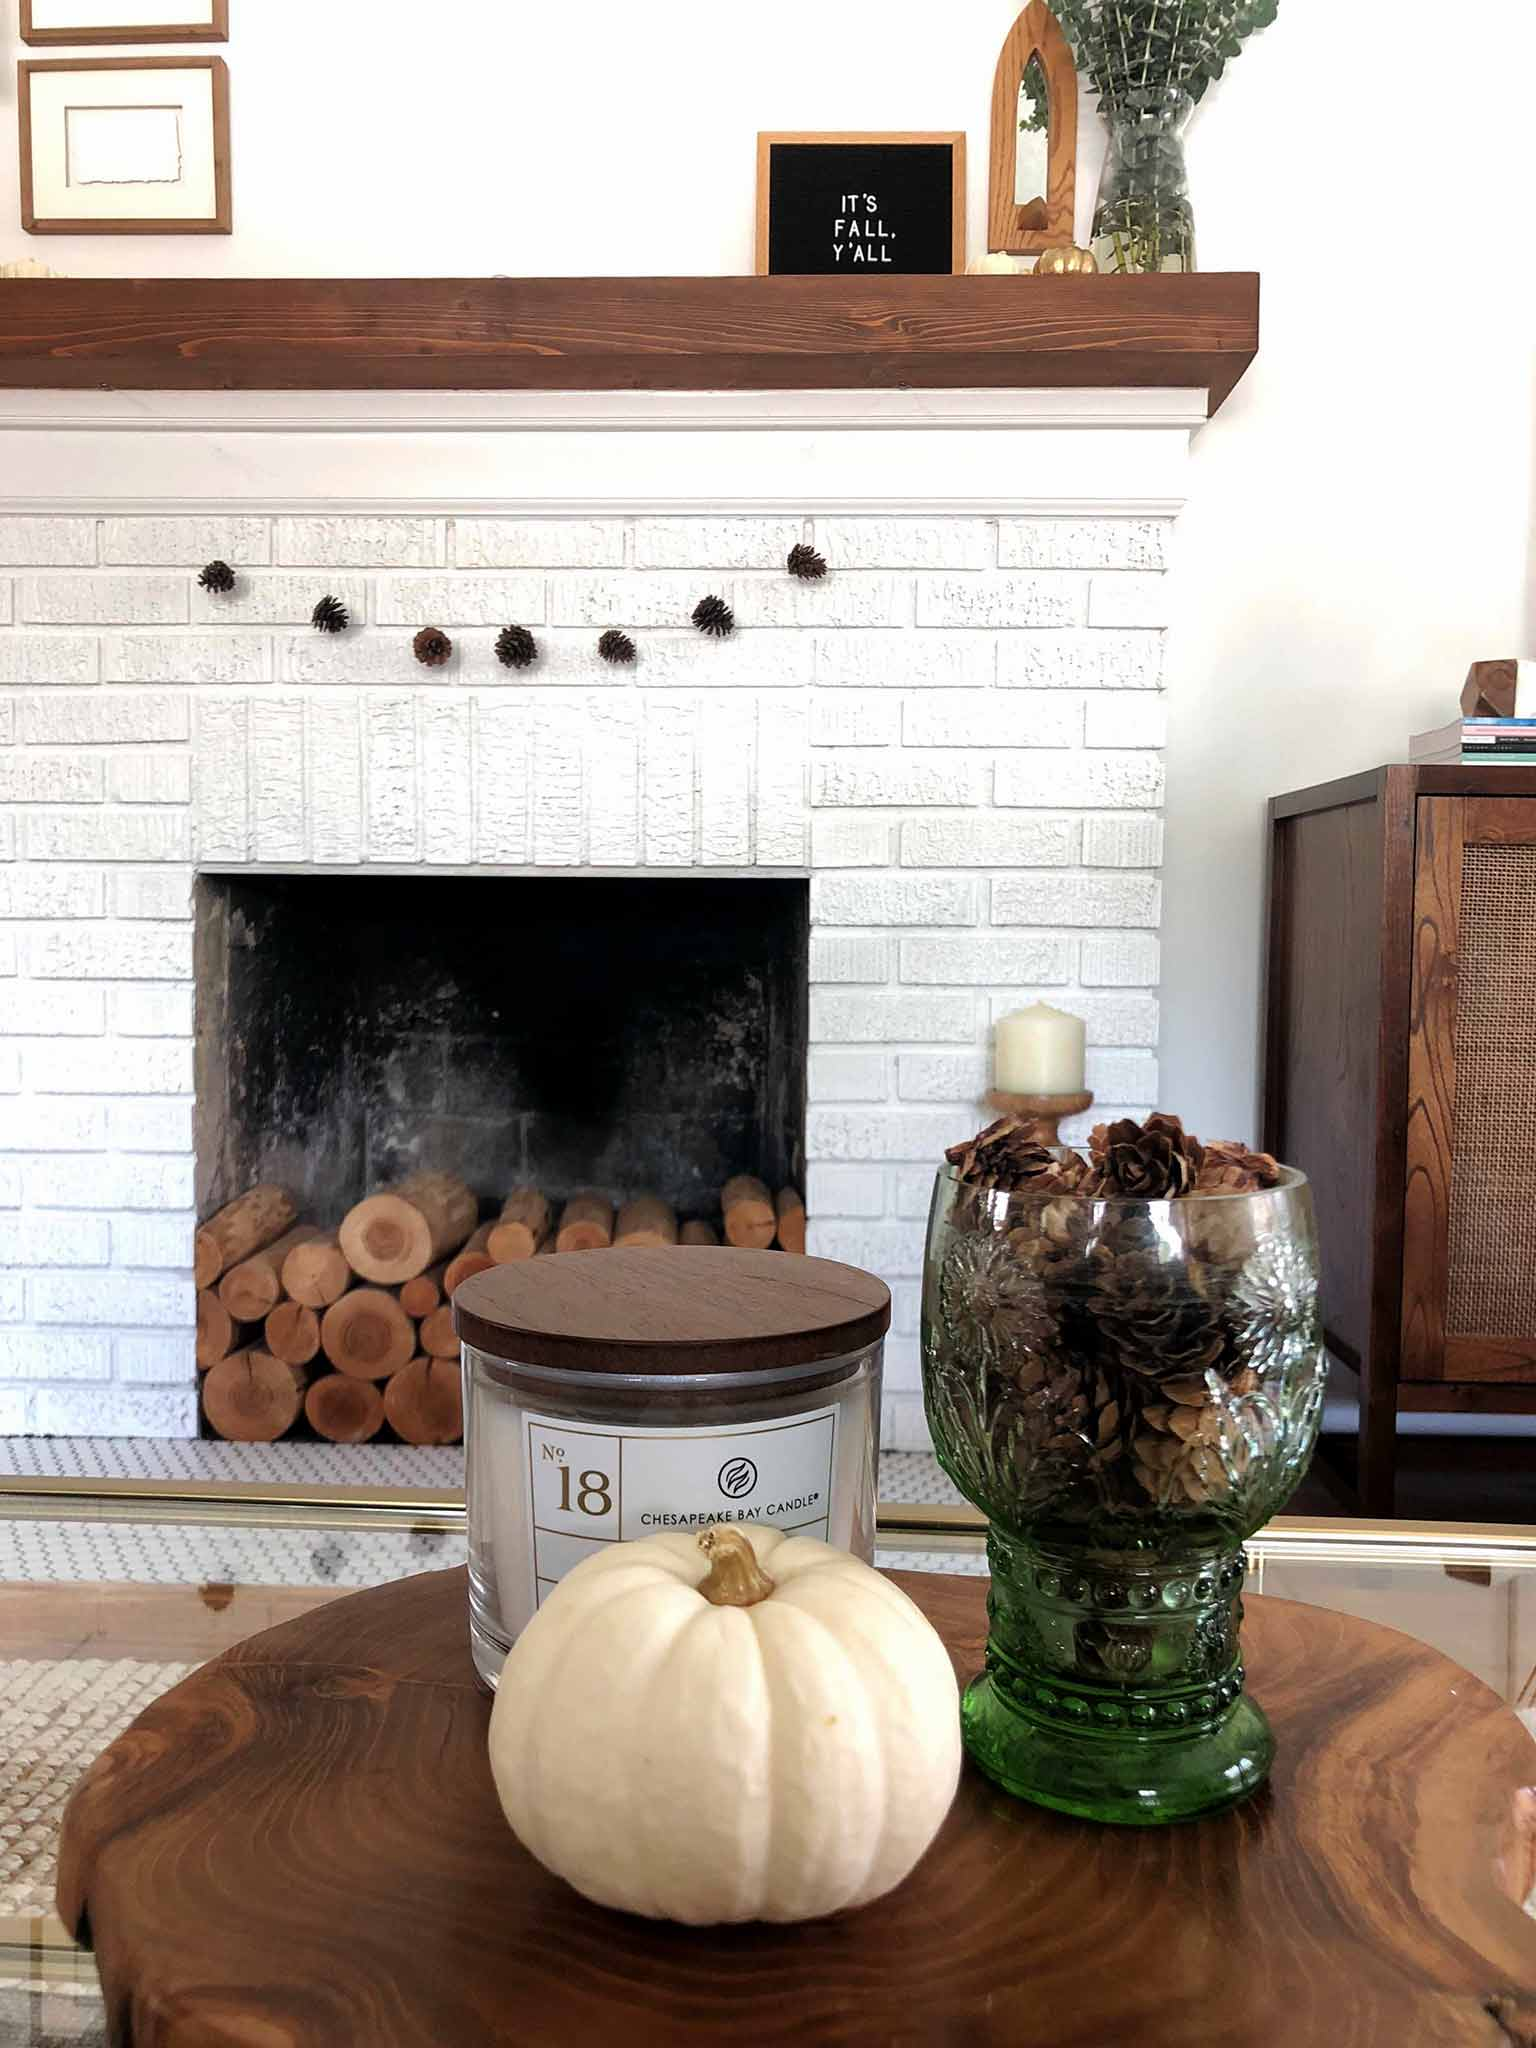 Fall mantel using pinecones and pumpkins - Simple Fall Decor for the Uncluttered Home - That Homebird Life blog